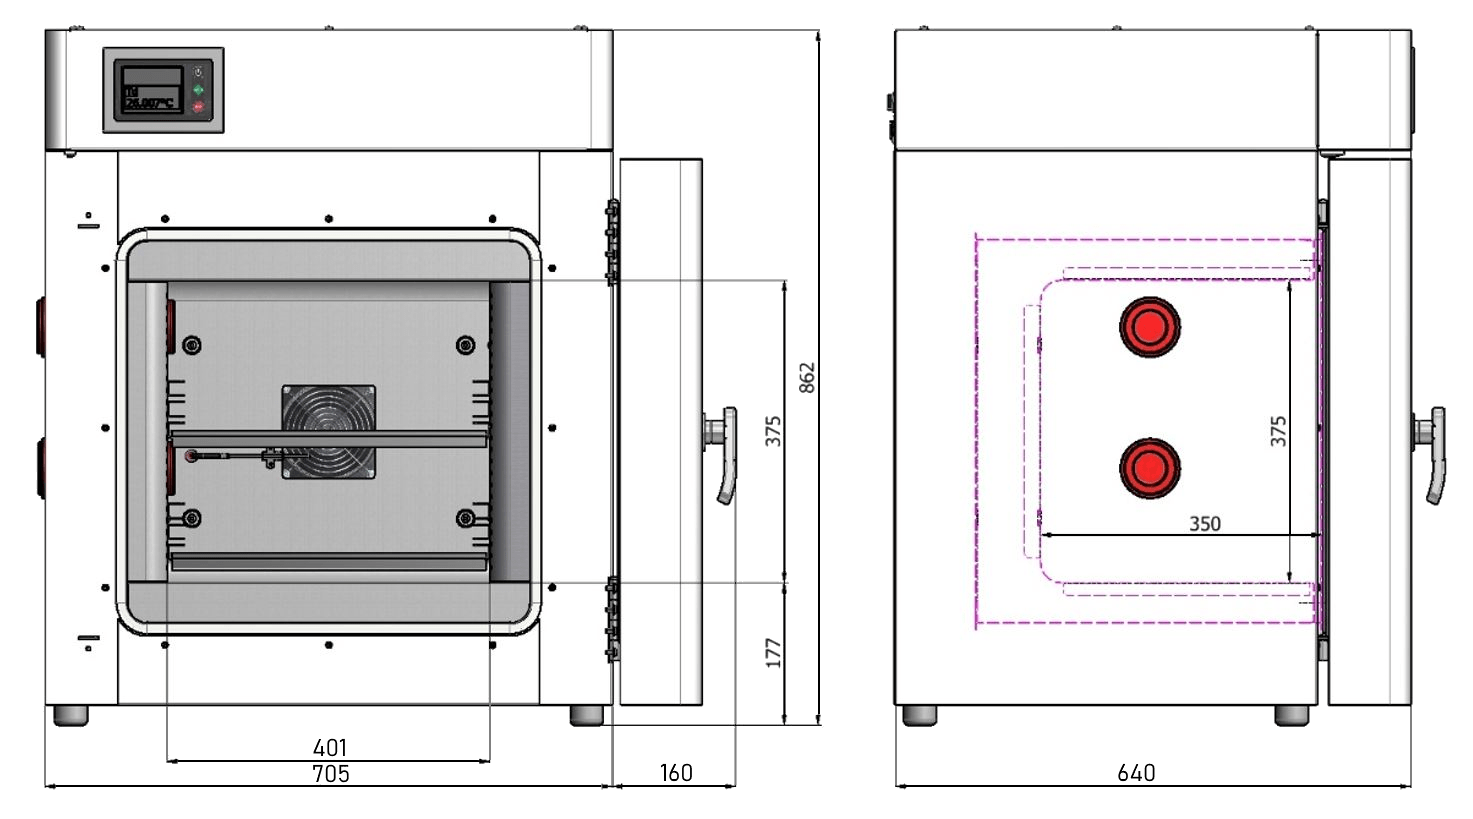 Calibration chamber, volume 53 litres